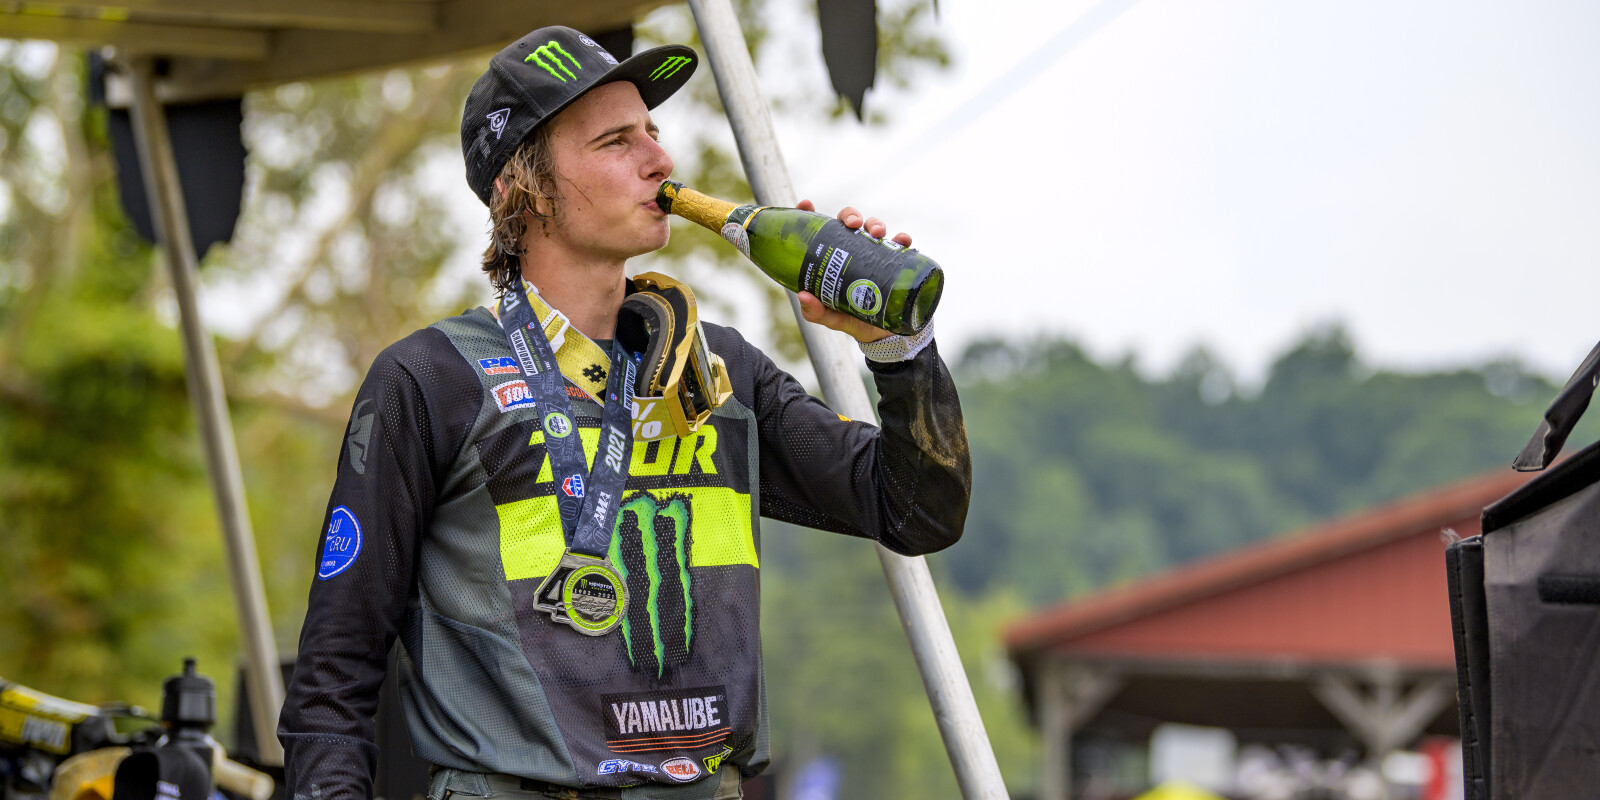 Images from the National Motocross Championship at Loretta Lynn's